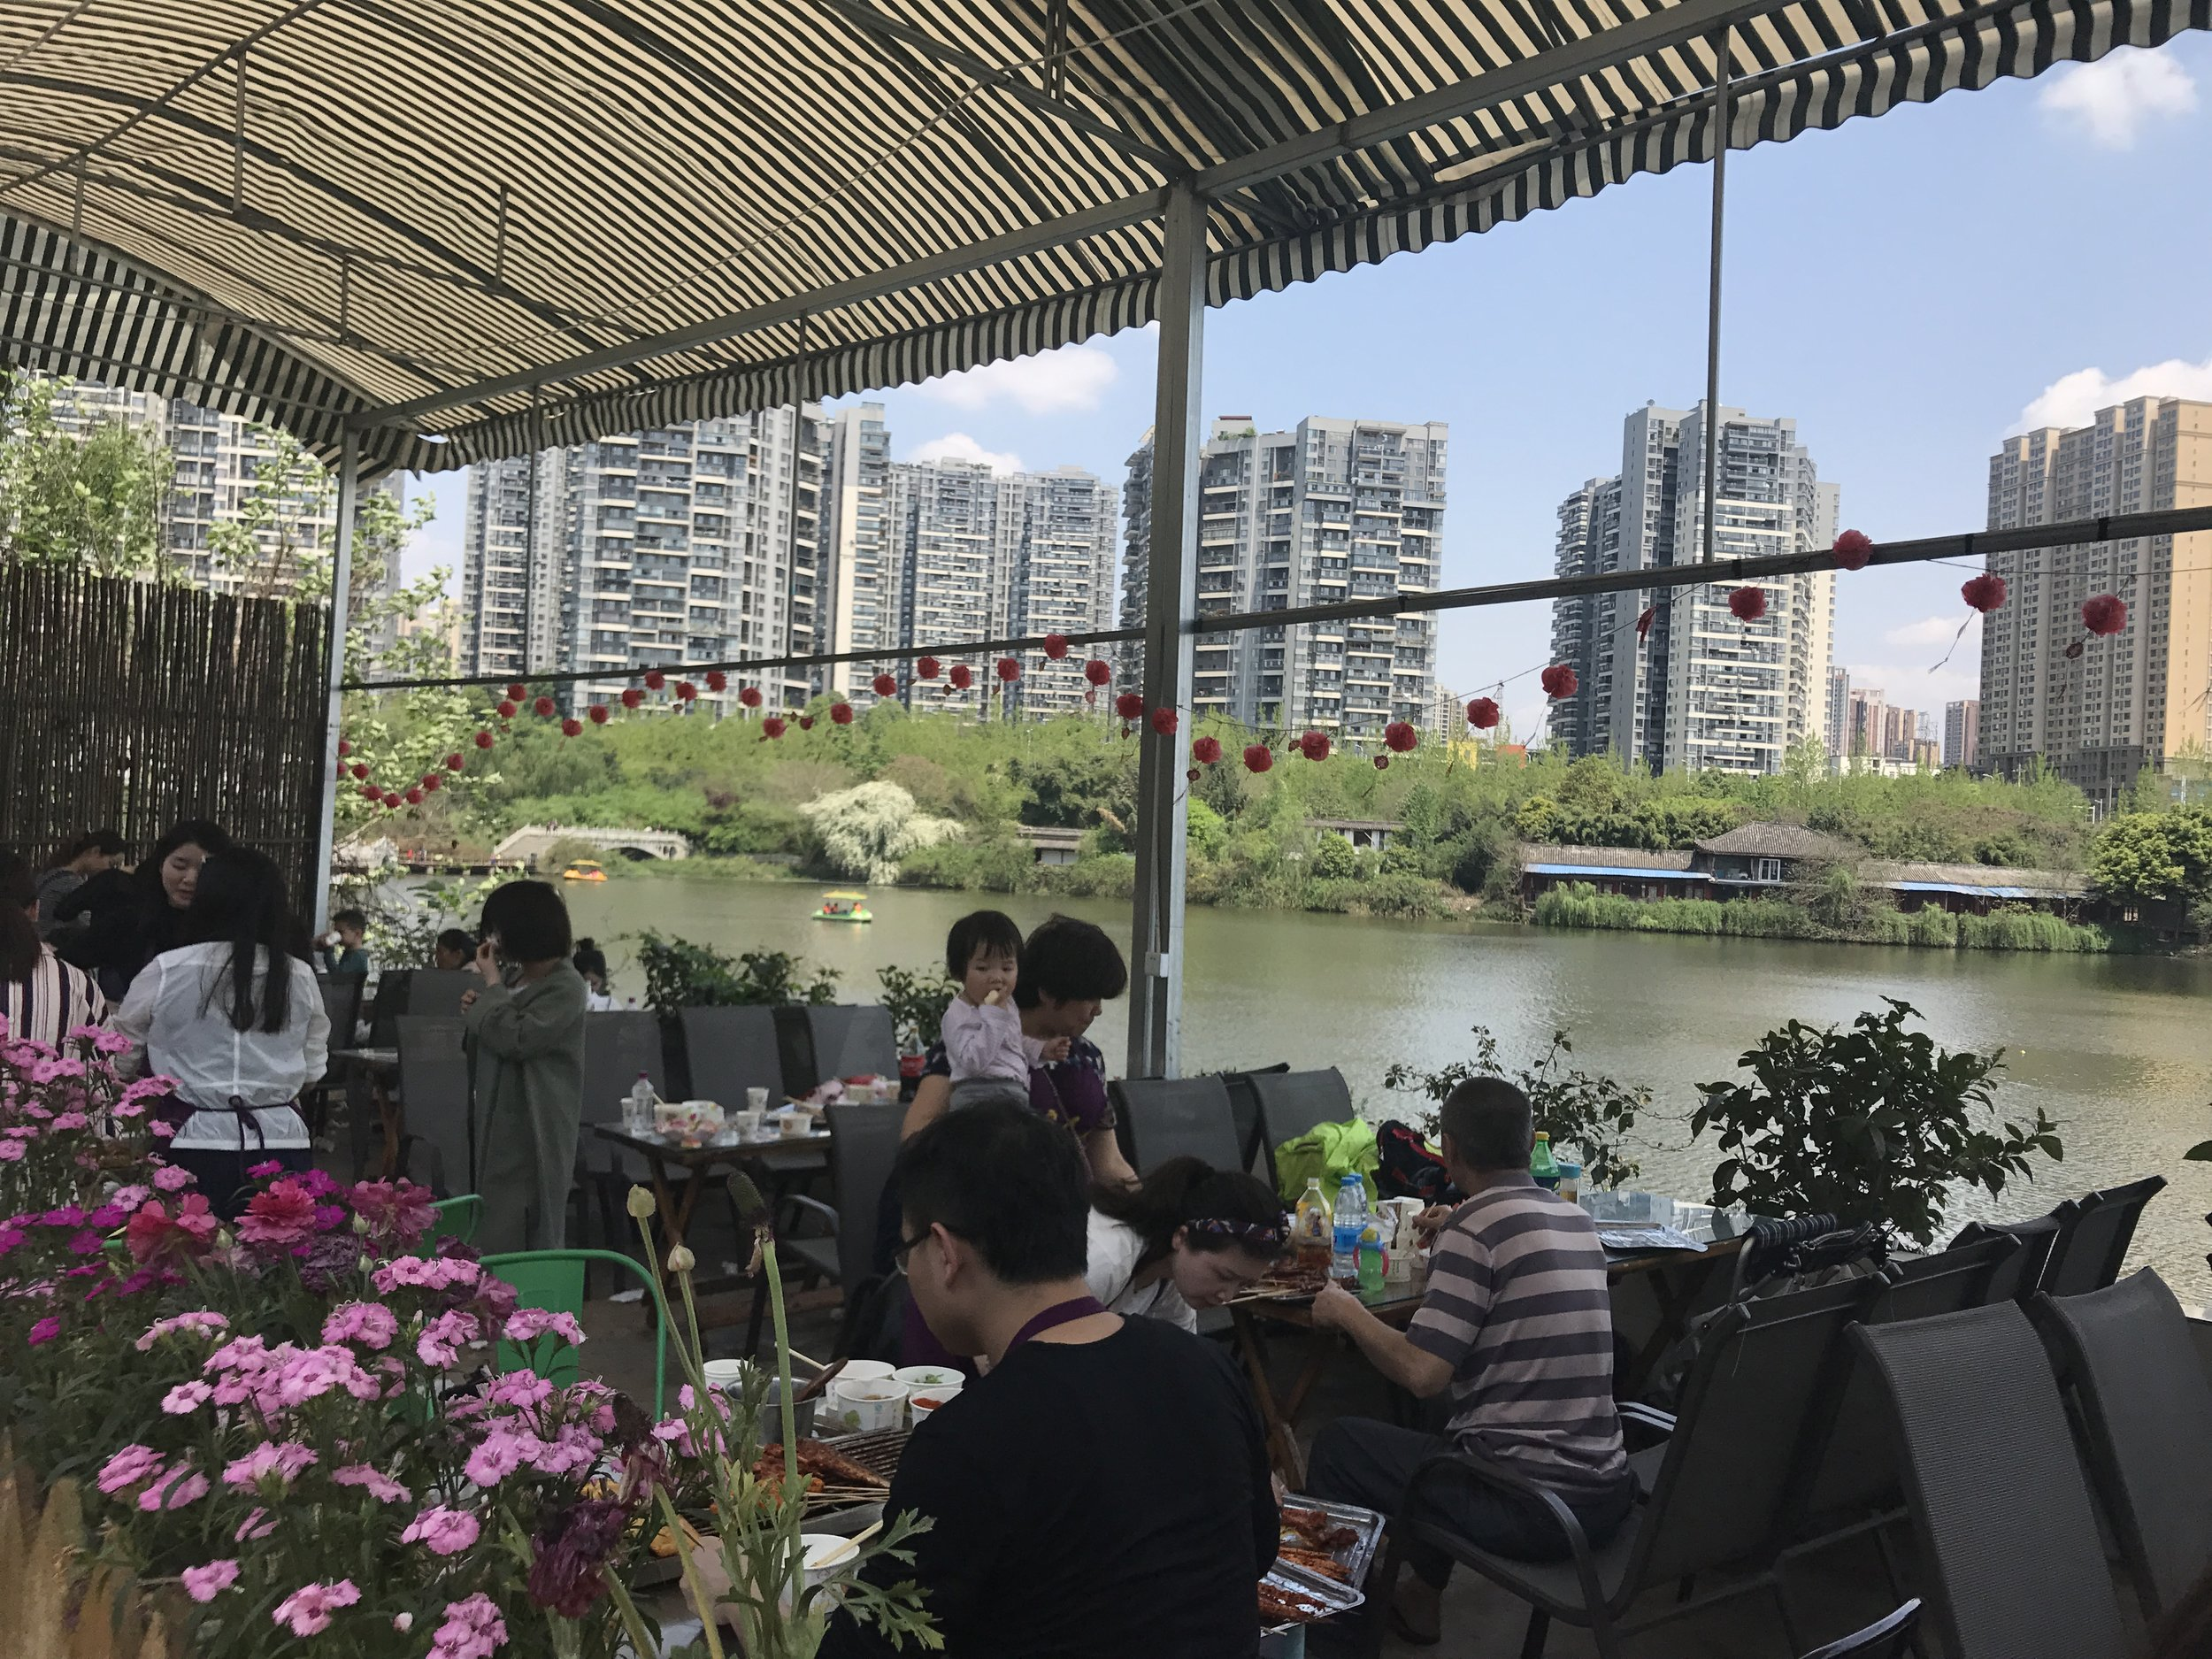 restaurant in Flower Town, Chengdu, China